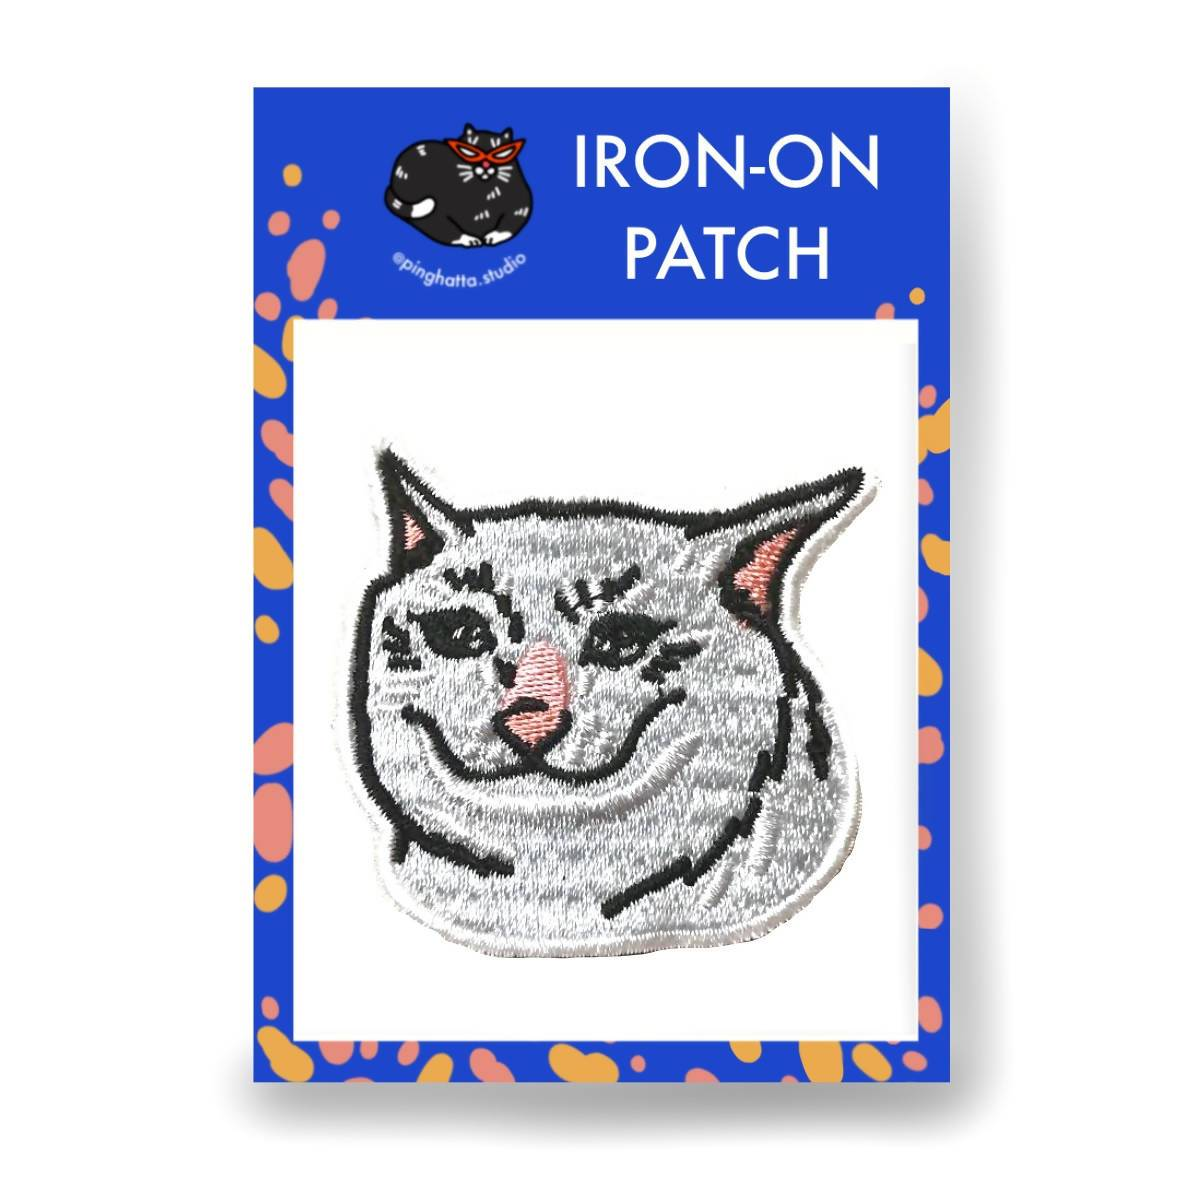 Sad Cat Meme Iron-on Patch - Iron On Patches - Ping Hatta. Studio - Naiise